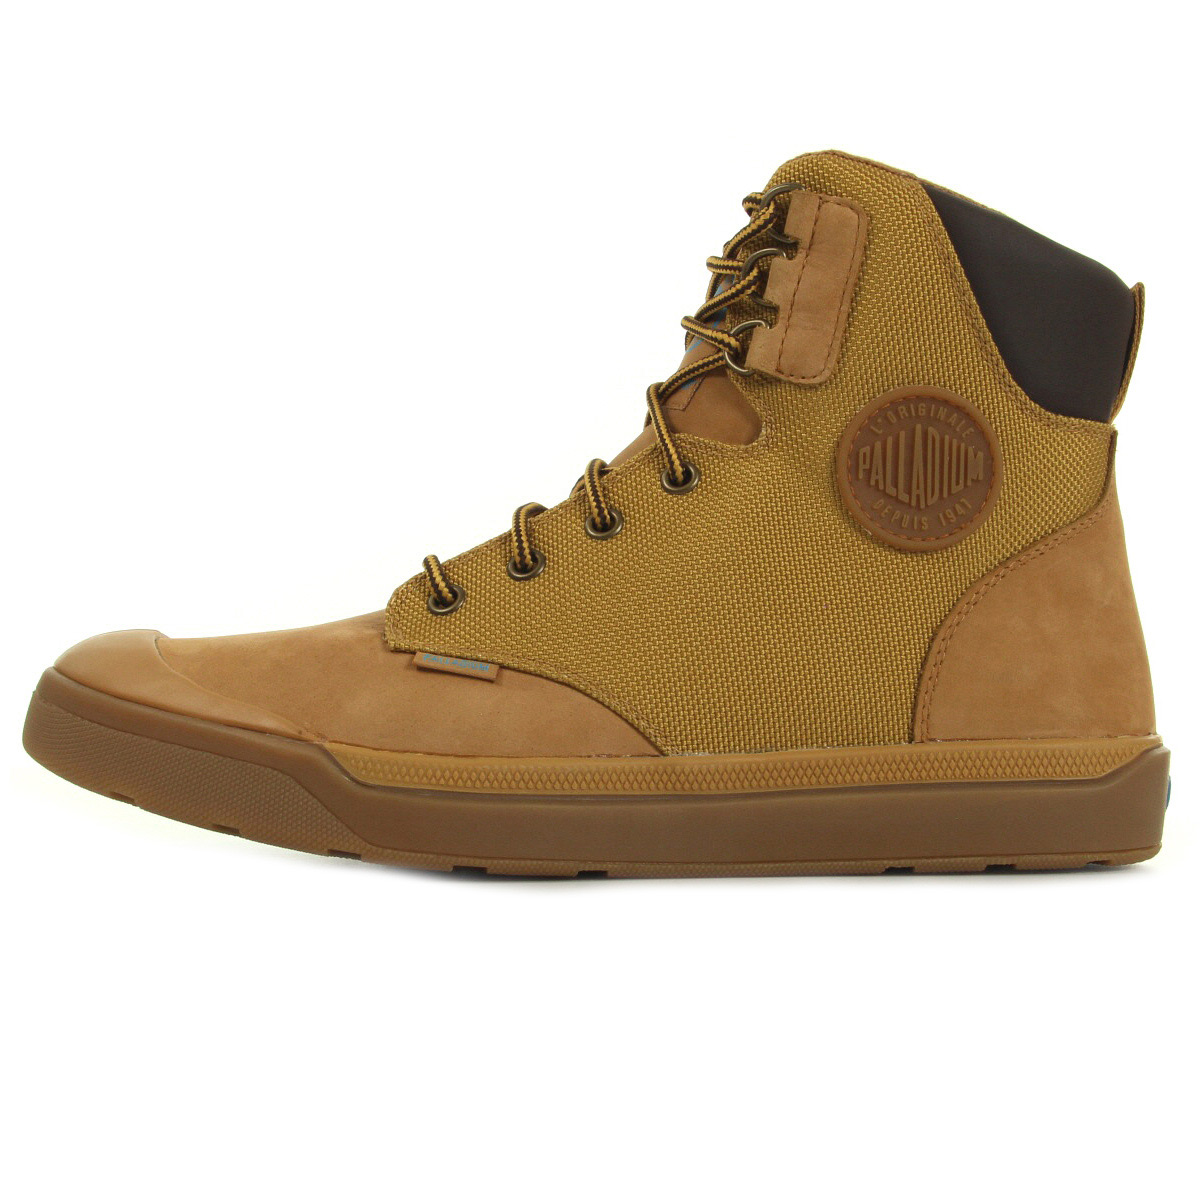 Palladium Palaru Hi Waterproof Amber Gold Mid H 74424846, Boots homme